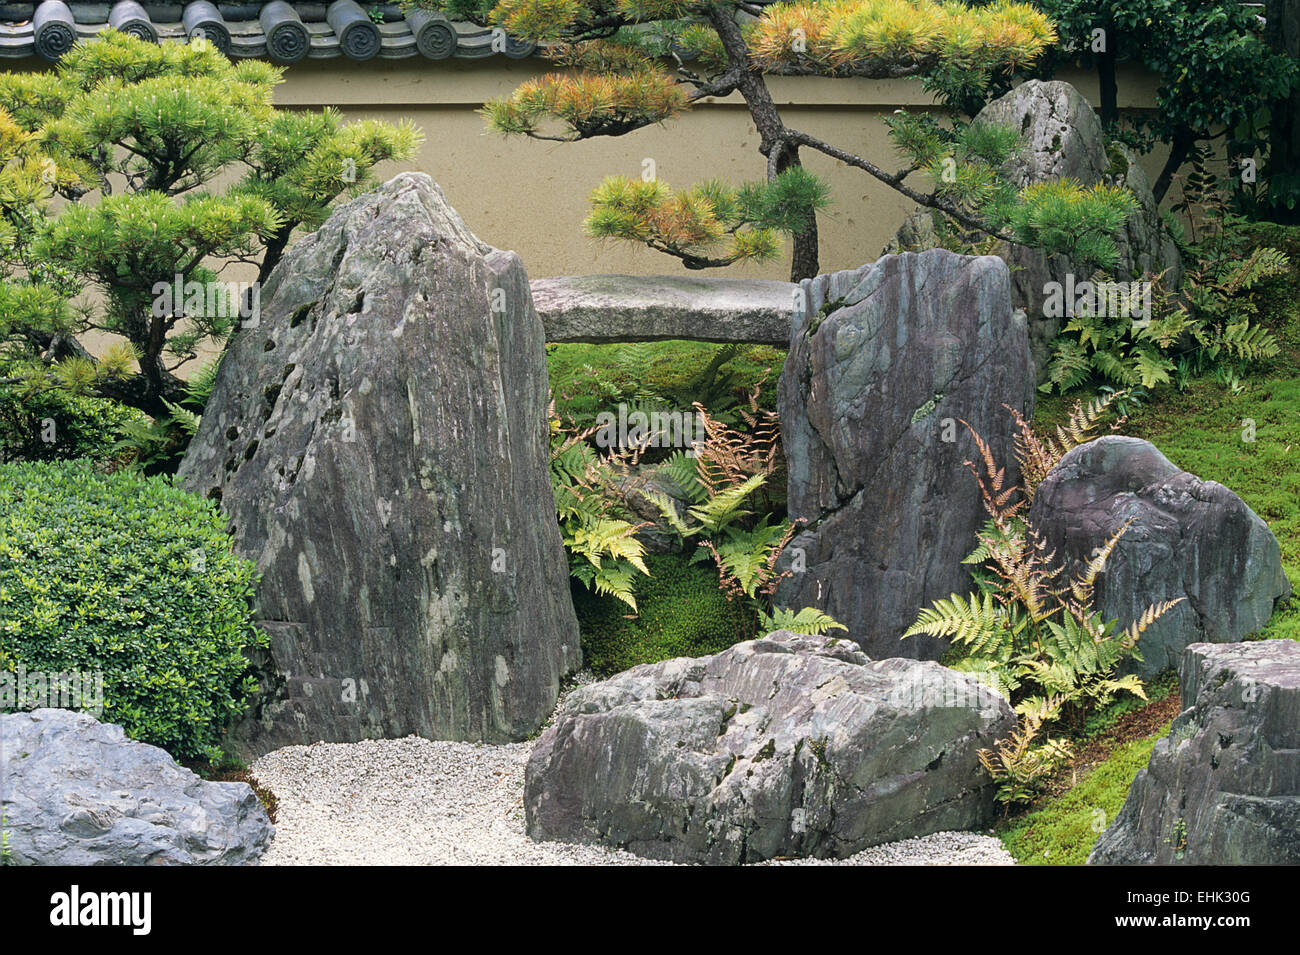 A detail of the arrangements of stones and plants and gravel at this sub temple in Daitokuji warrents a second glance. - Stock Image